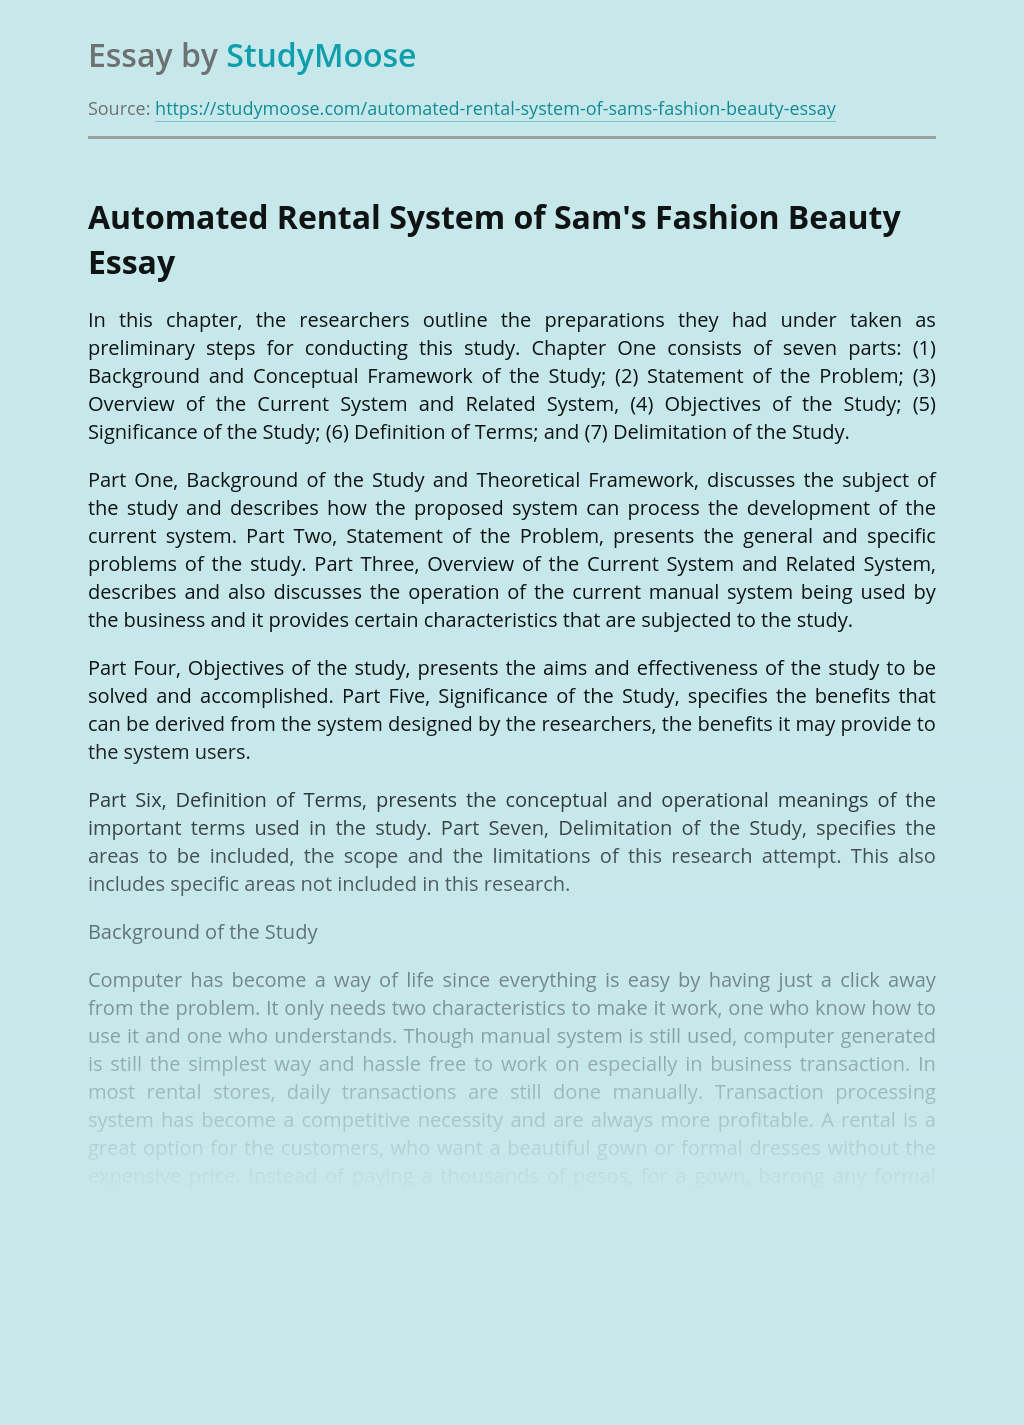 Automated Rental System of Sam's Fashion Beauty